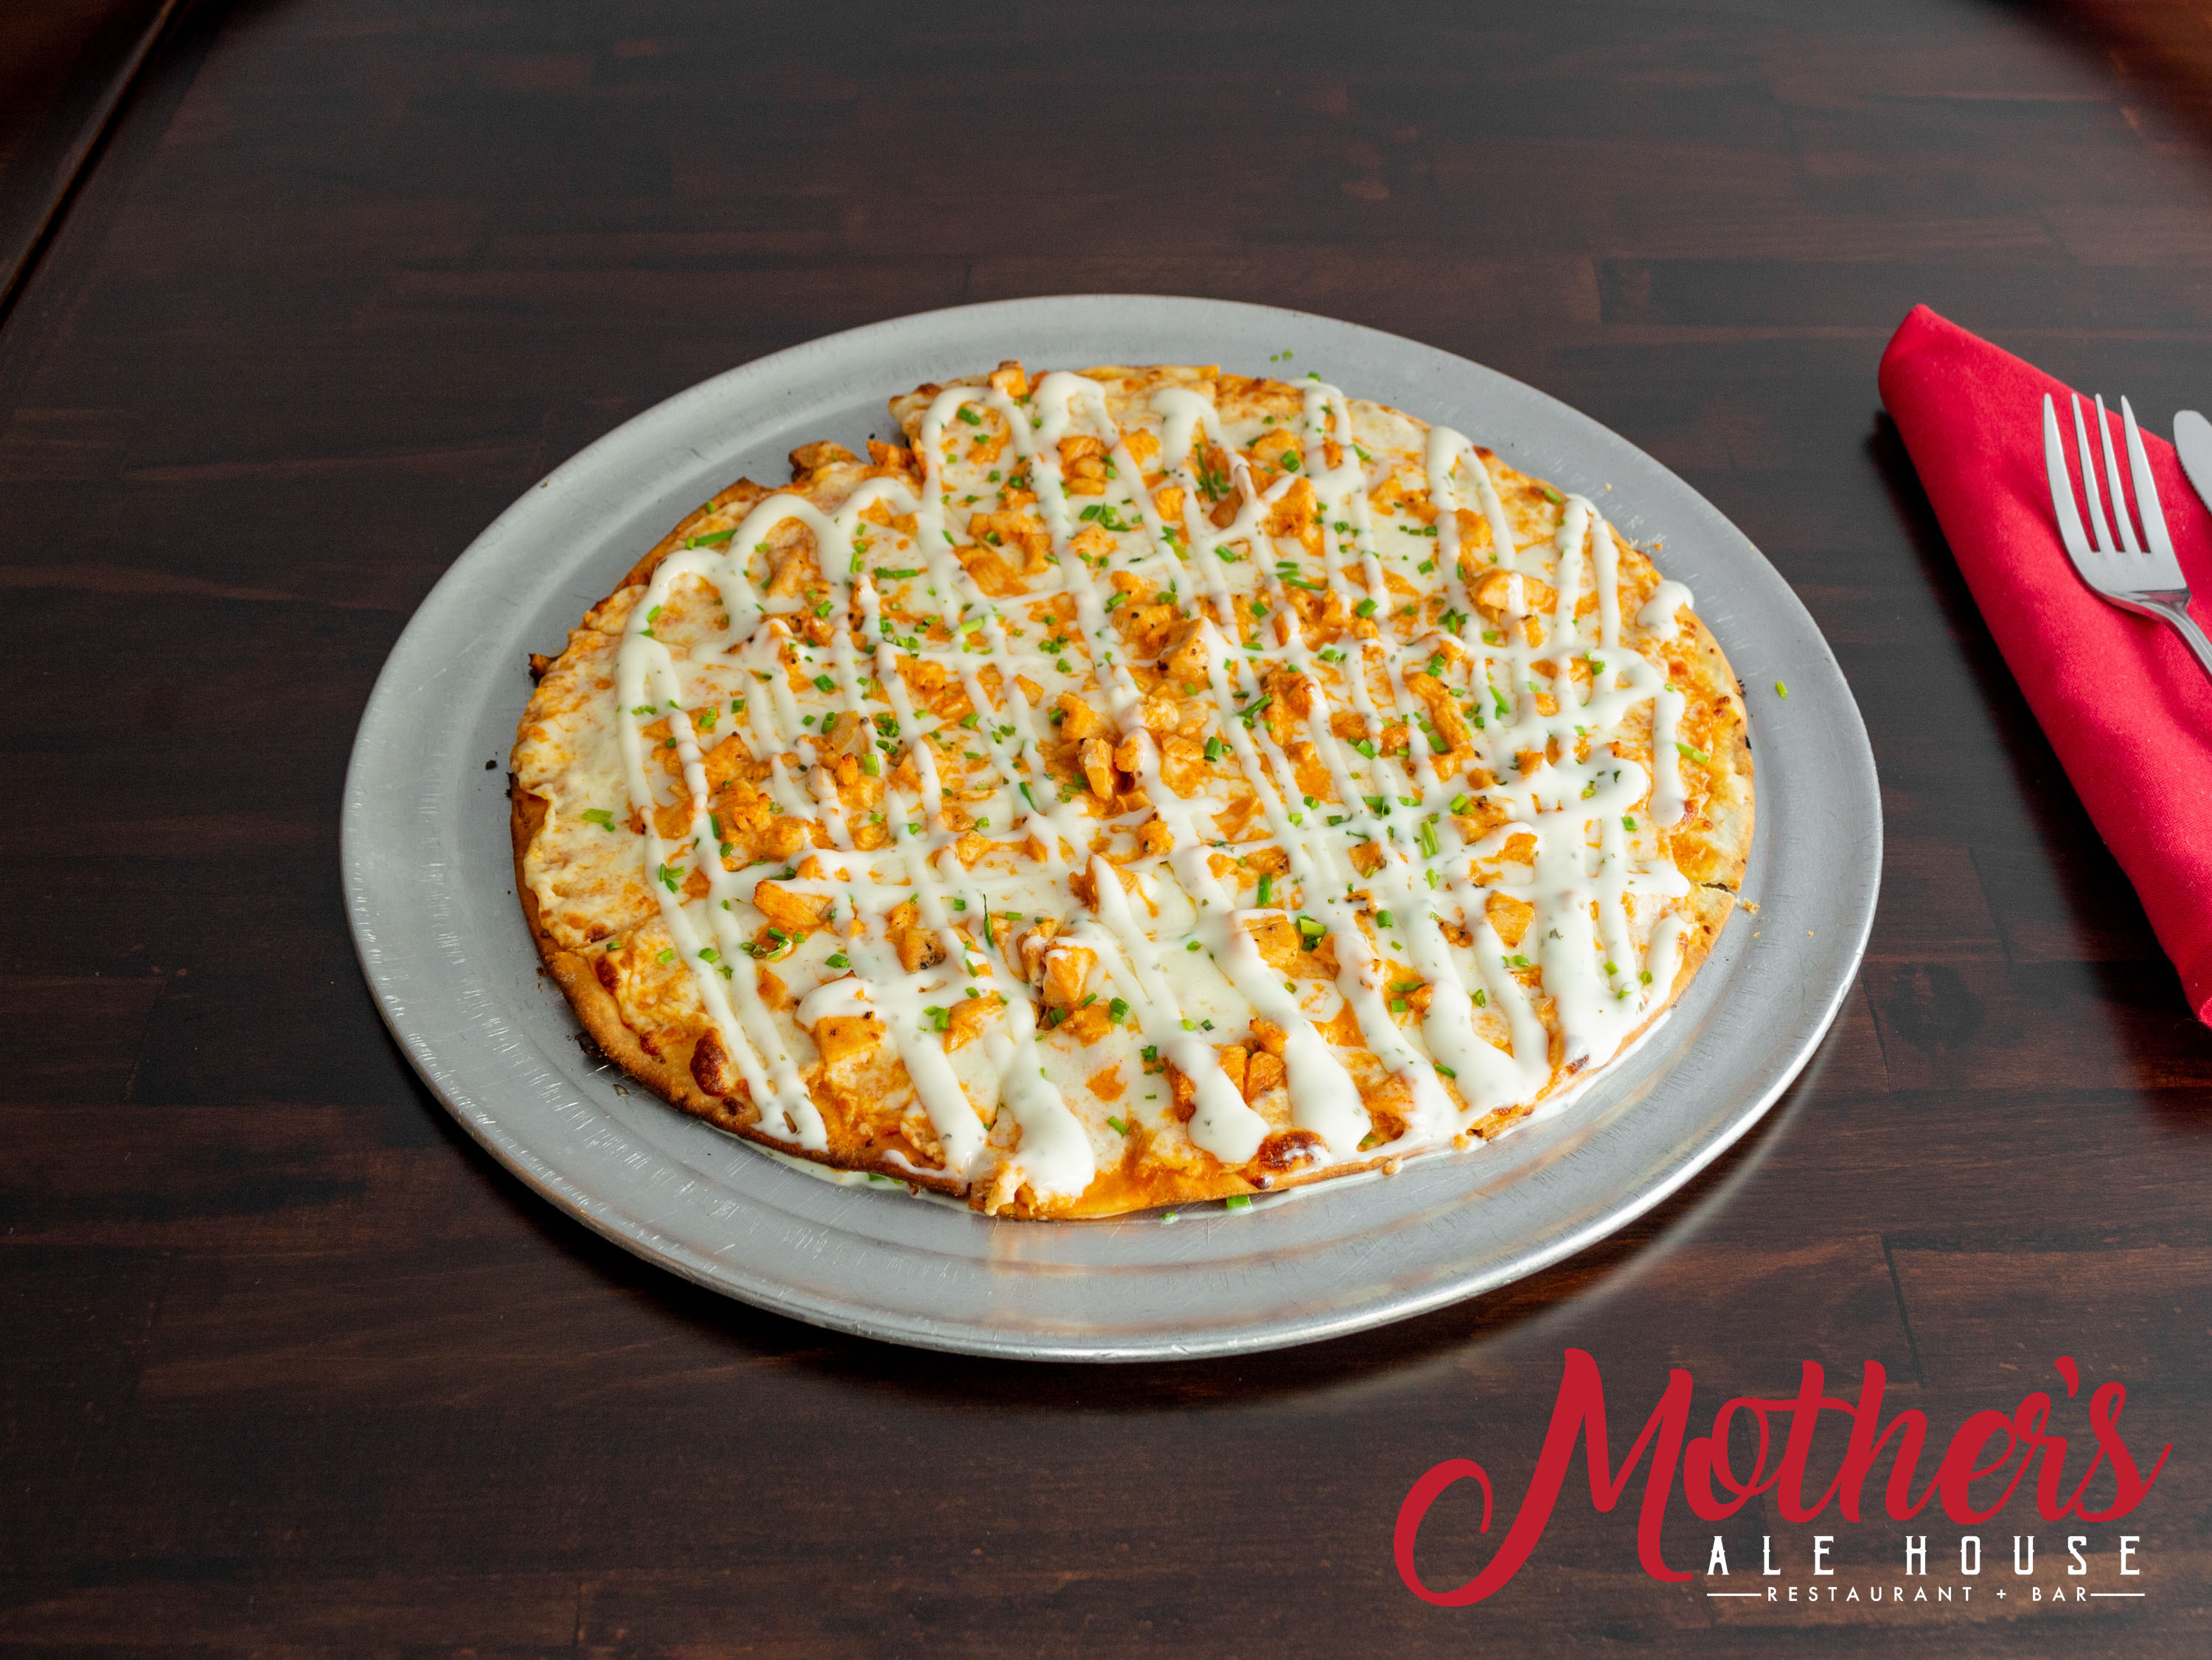 Mother'sAleHouse_BuffaloChickenPizza MaH